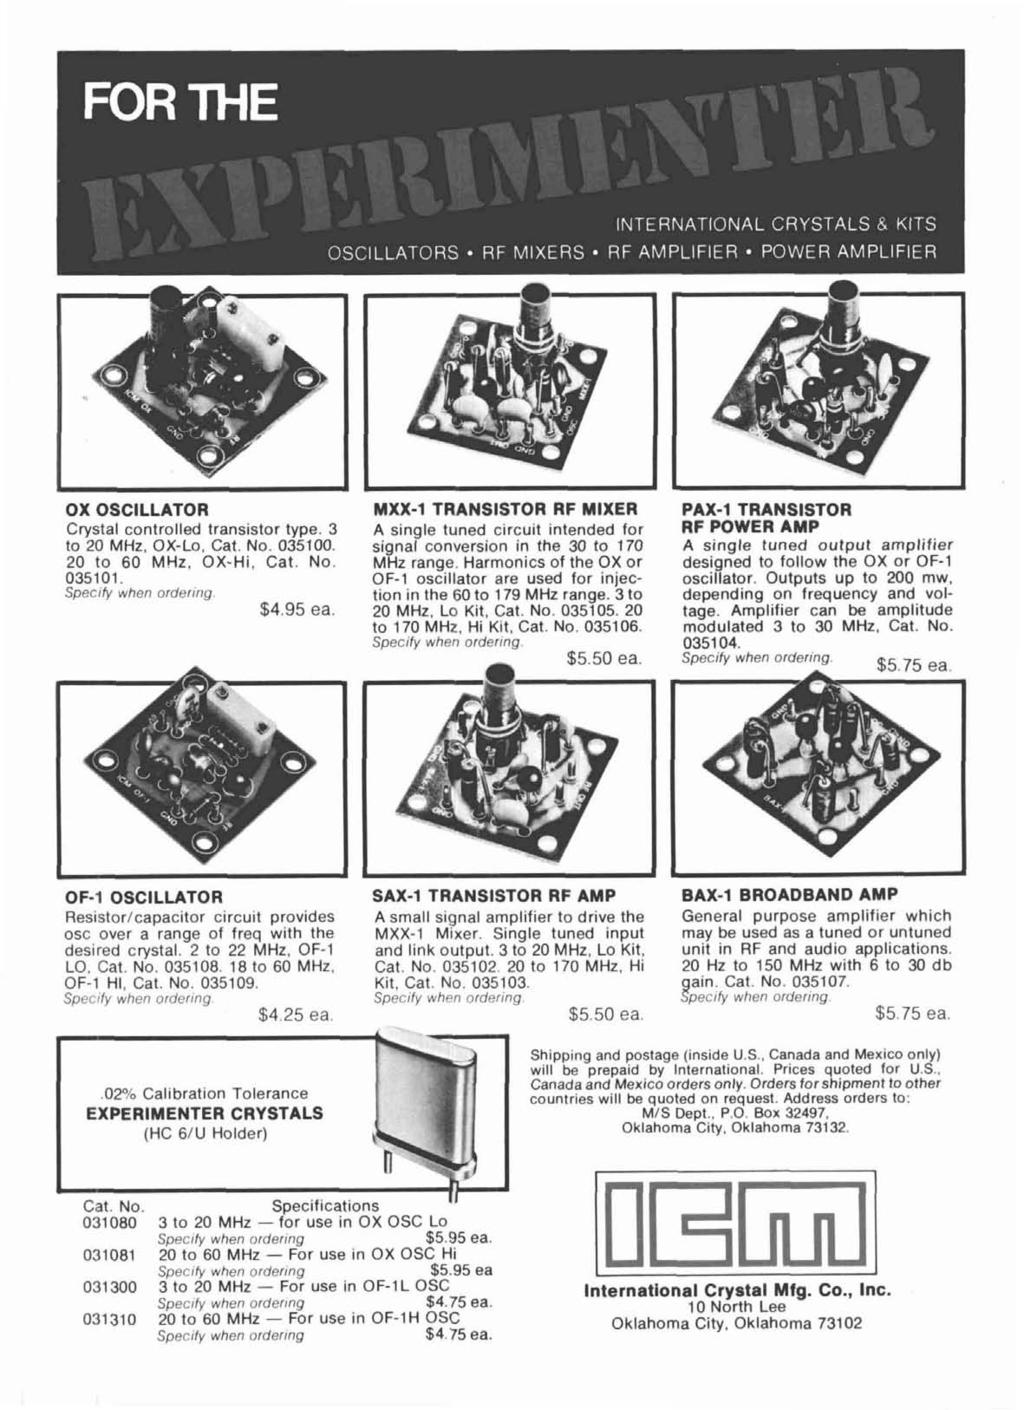 Radio Ham Magazine July 1978 J Antenna 74 Variable Power Supply 36 Egrated Circuit Type 747 Accommodates Two Operational Amplifiers Ox Oscllator Mxx 1 Transstor Rf Mxer Pax Crystal Controlled Transistor